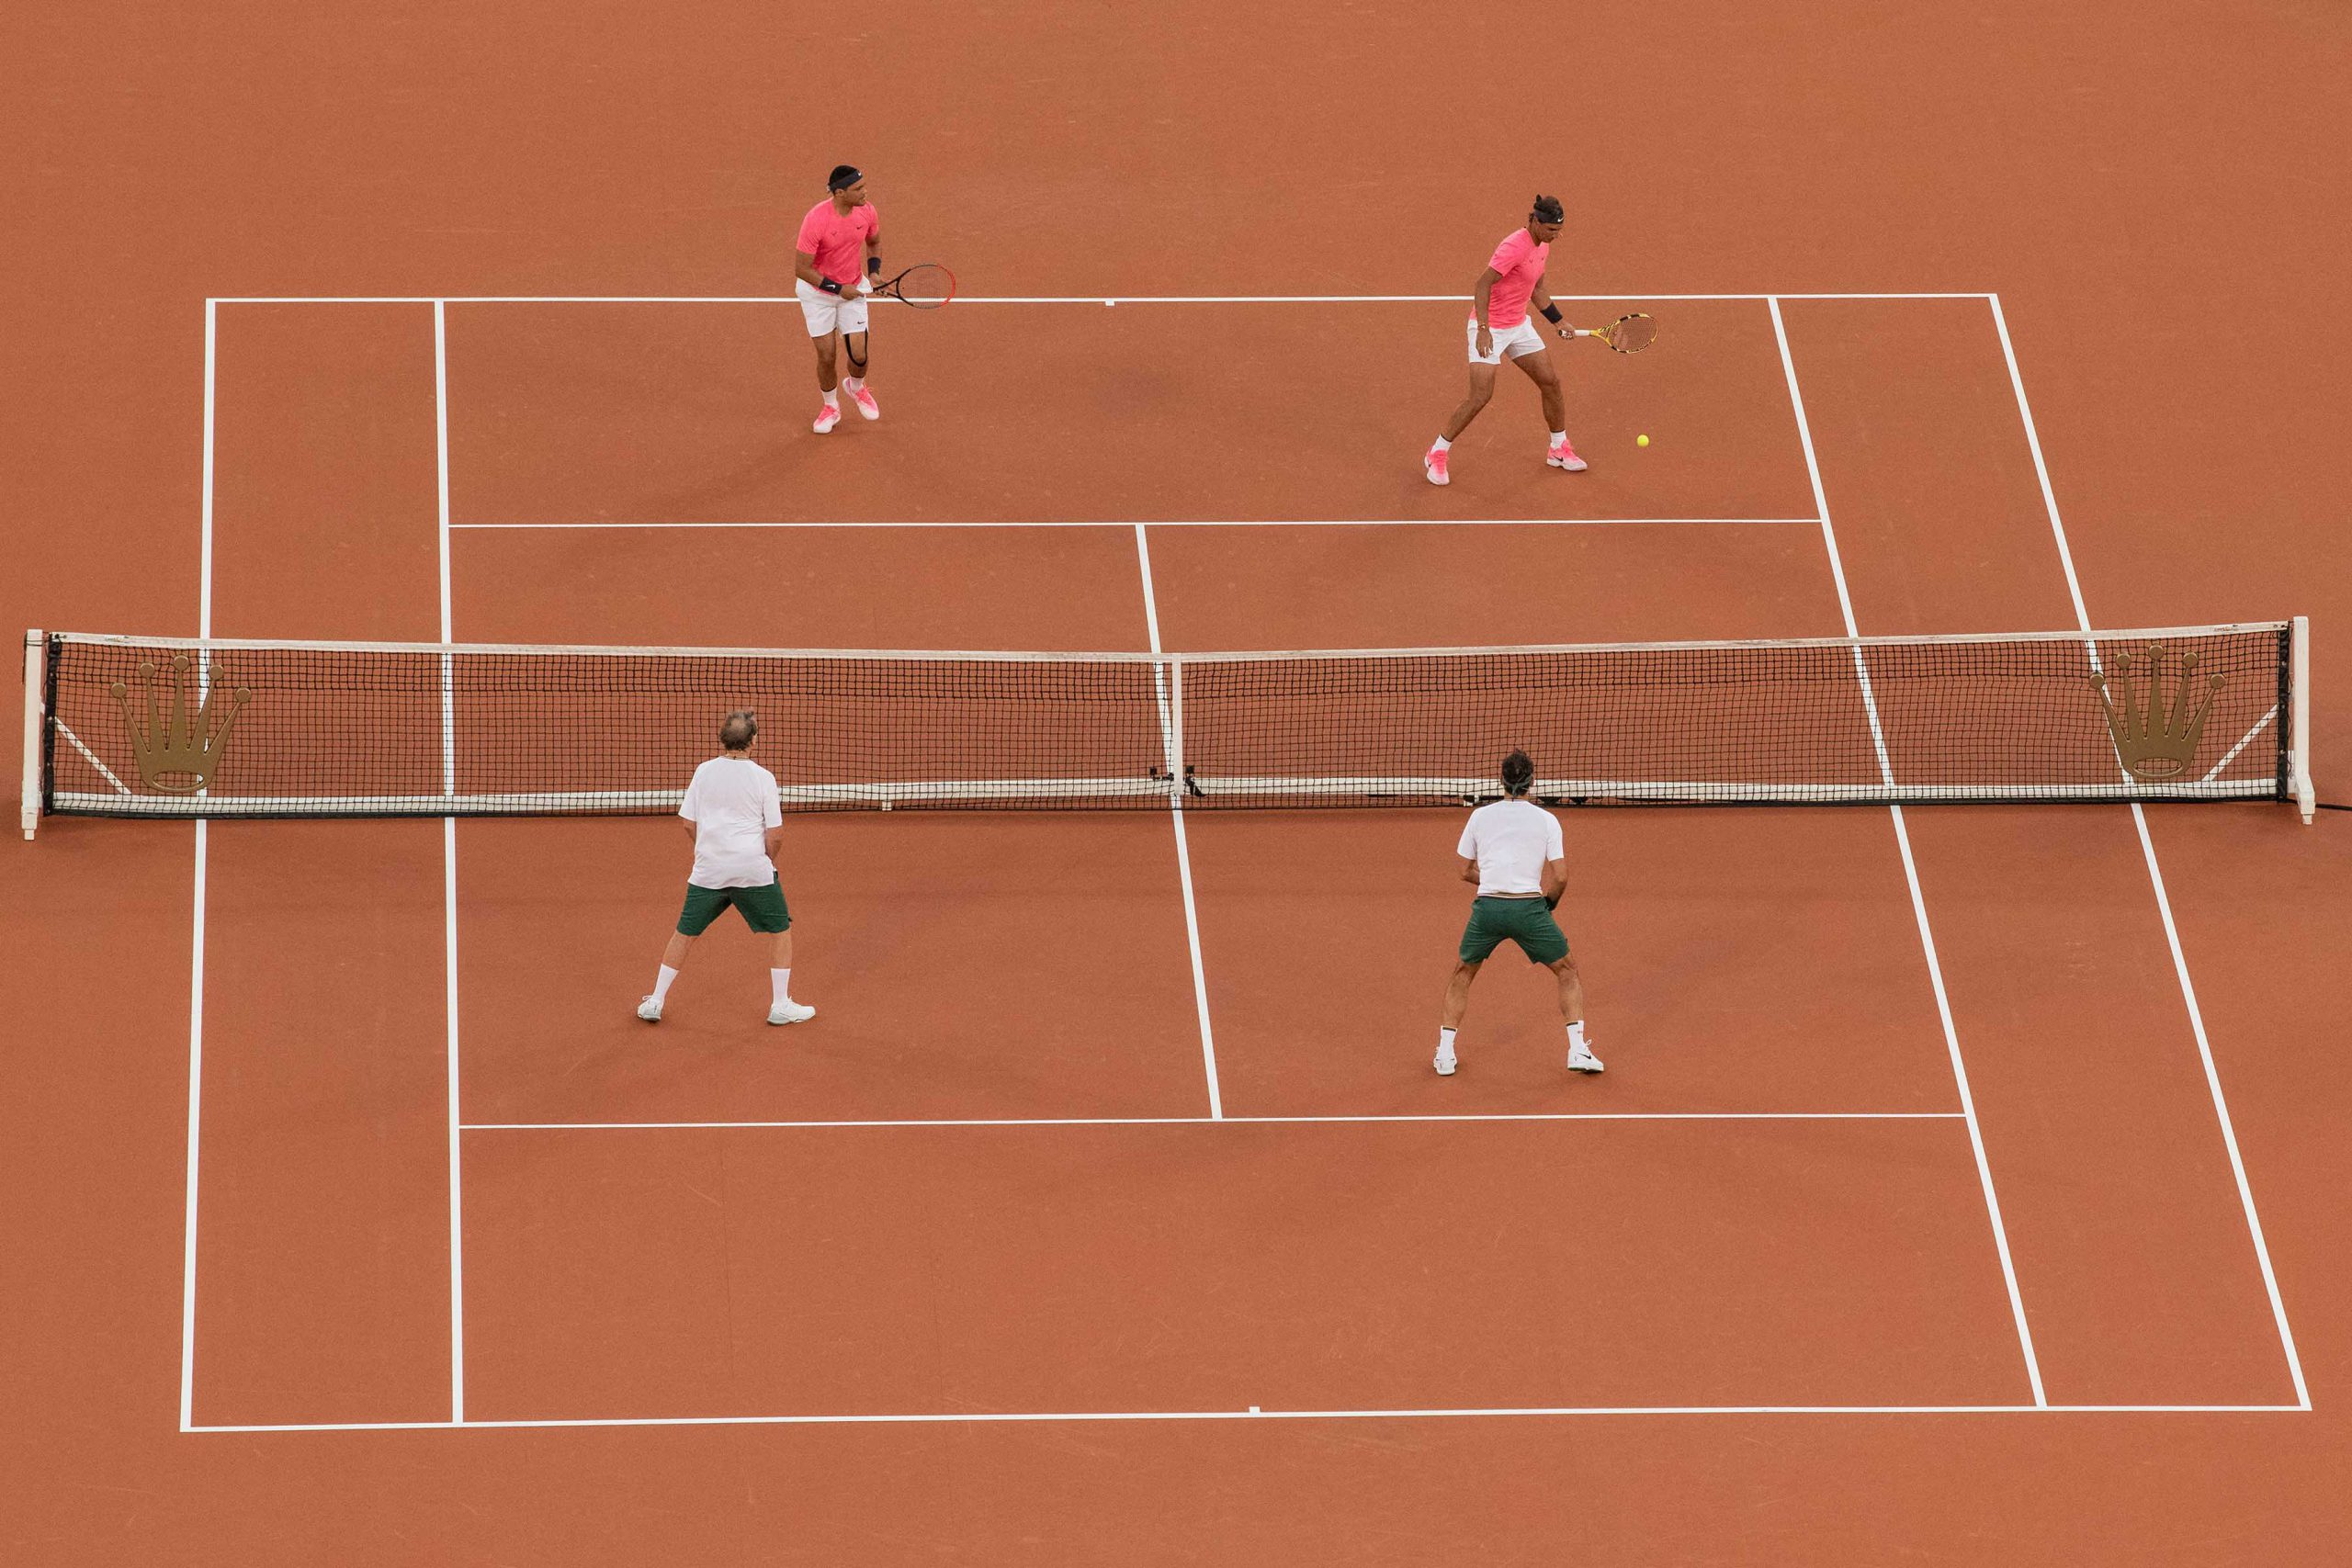 7 February 2020: The event opened with a doubles game between Roger Federer and Bill Gates and Rafael Nadal and Trevor Noah.